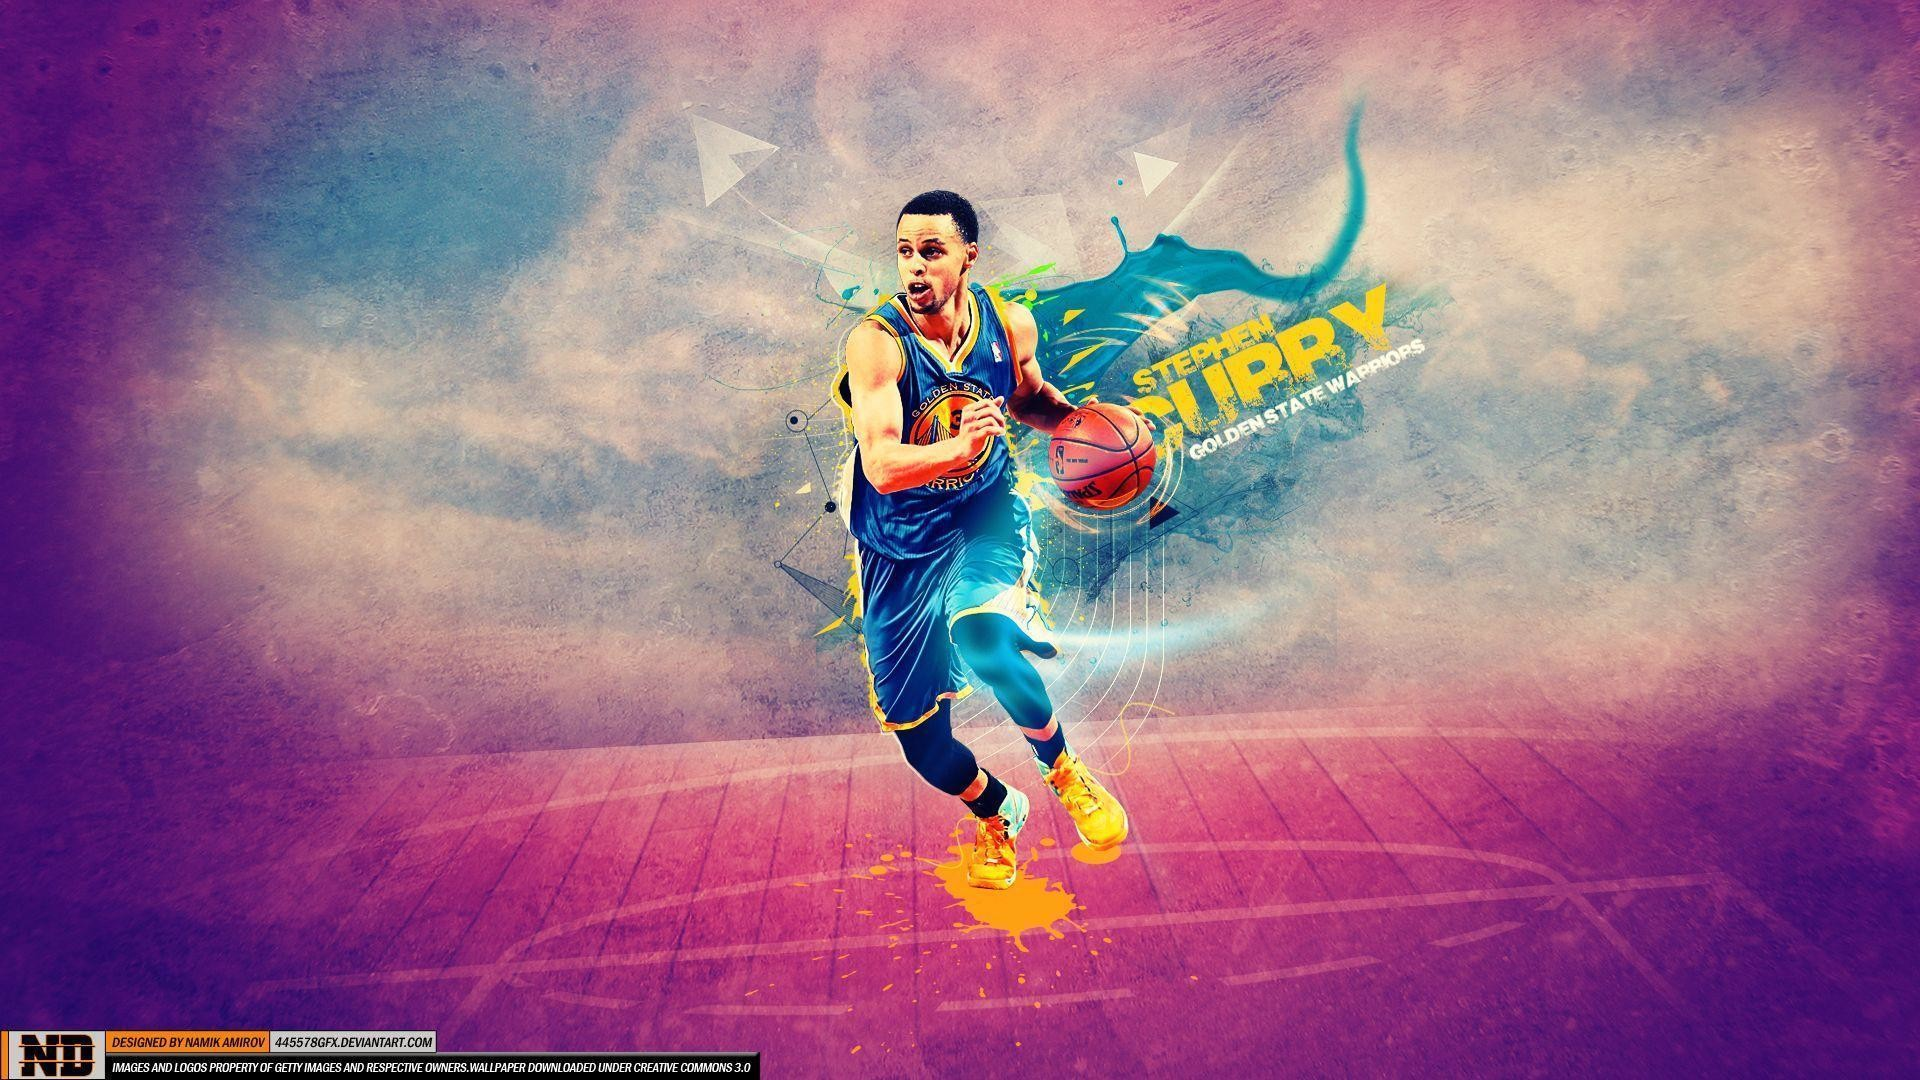 Stephen curry wallpaper, Stephen Curry and Kyrie irving on Pinterest